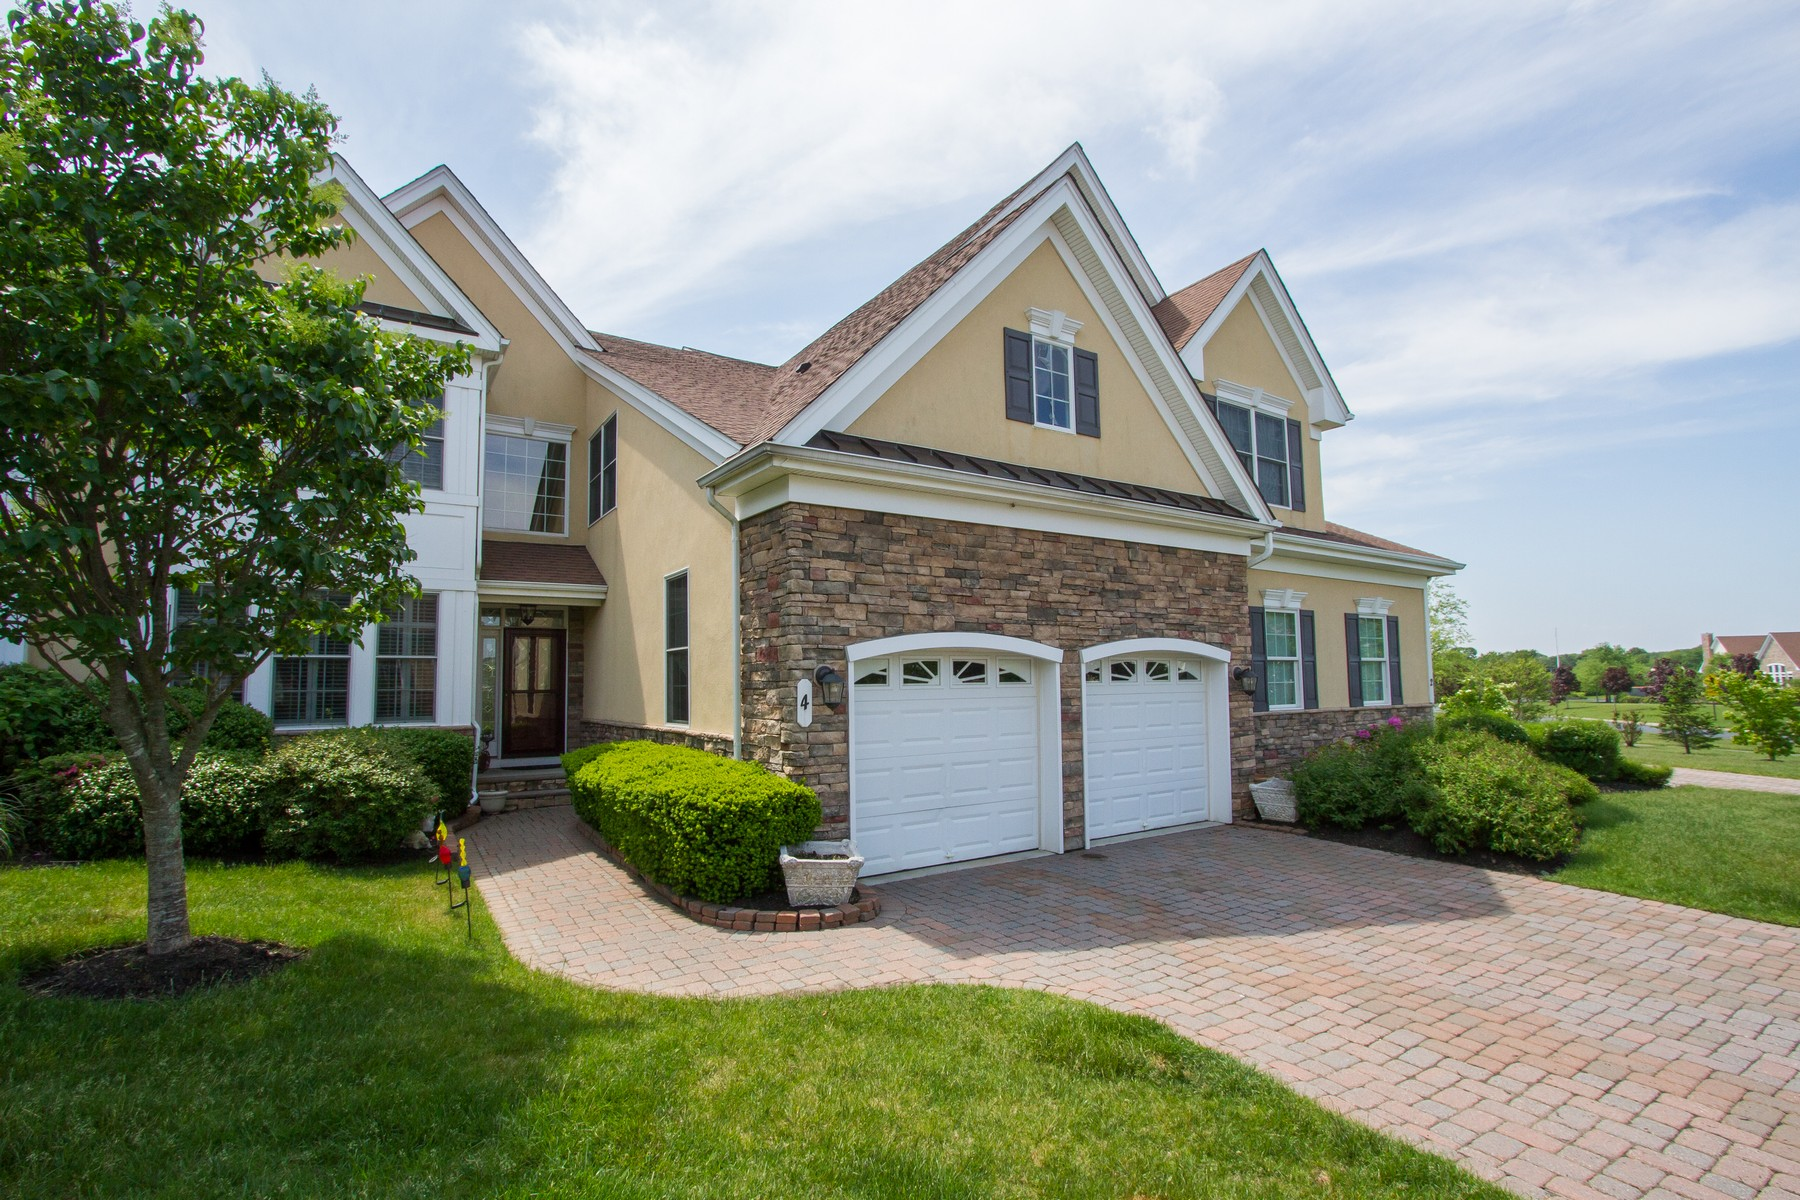 Single Family Home for Sale at Greenbriar Falls 4 Mineral Springs, Tinton Falls, New Jersey 07724 United States